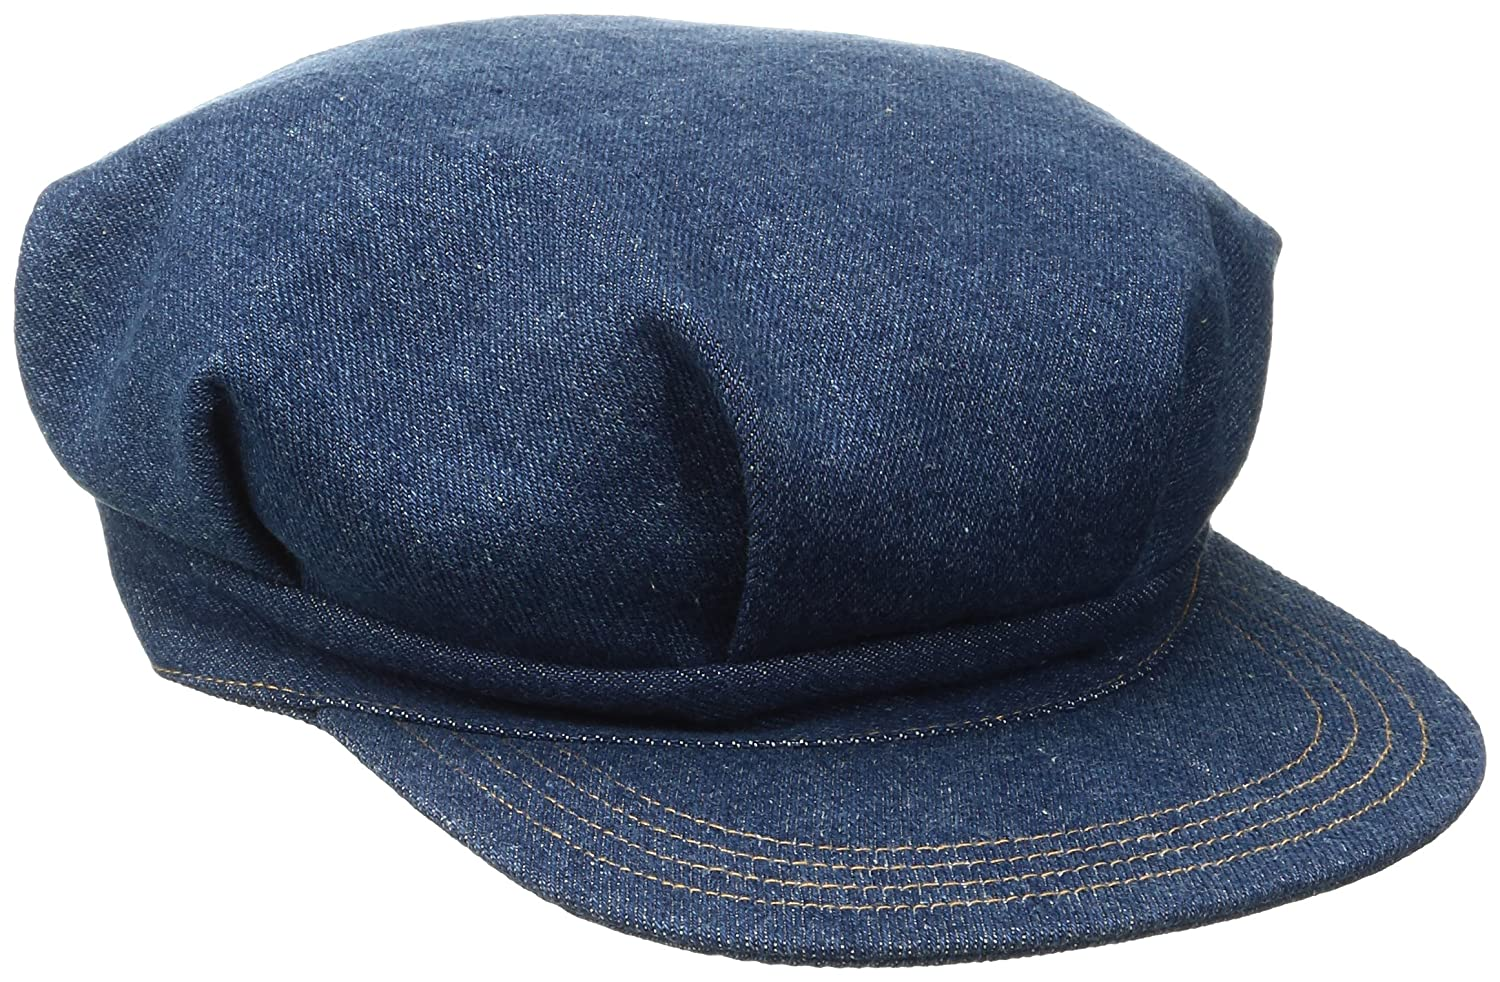 64326566e65 Amazon.com  Brixton Men s Murdoch Cap  Clothing